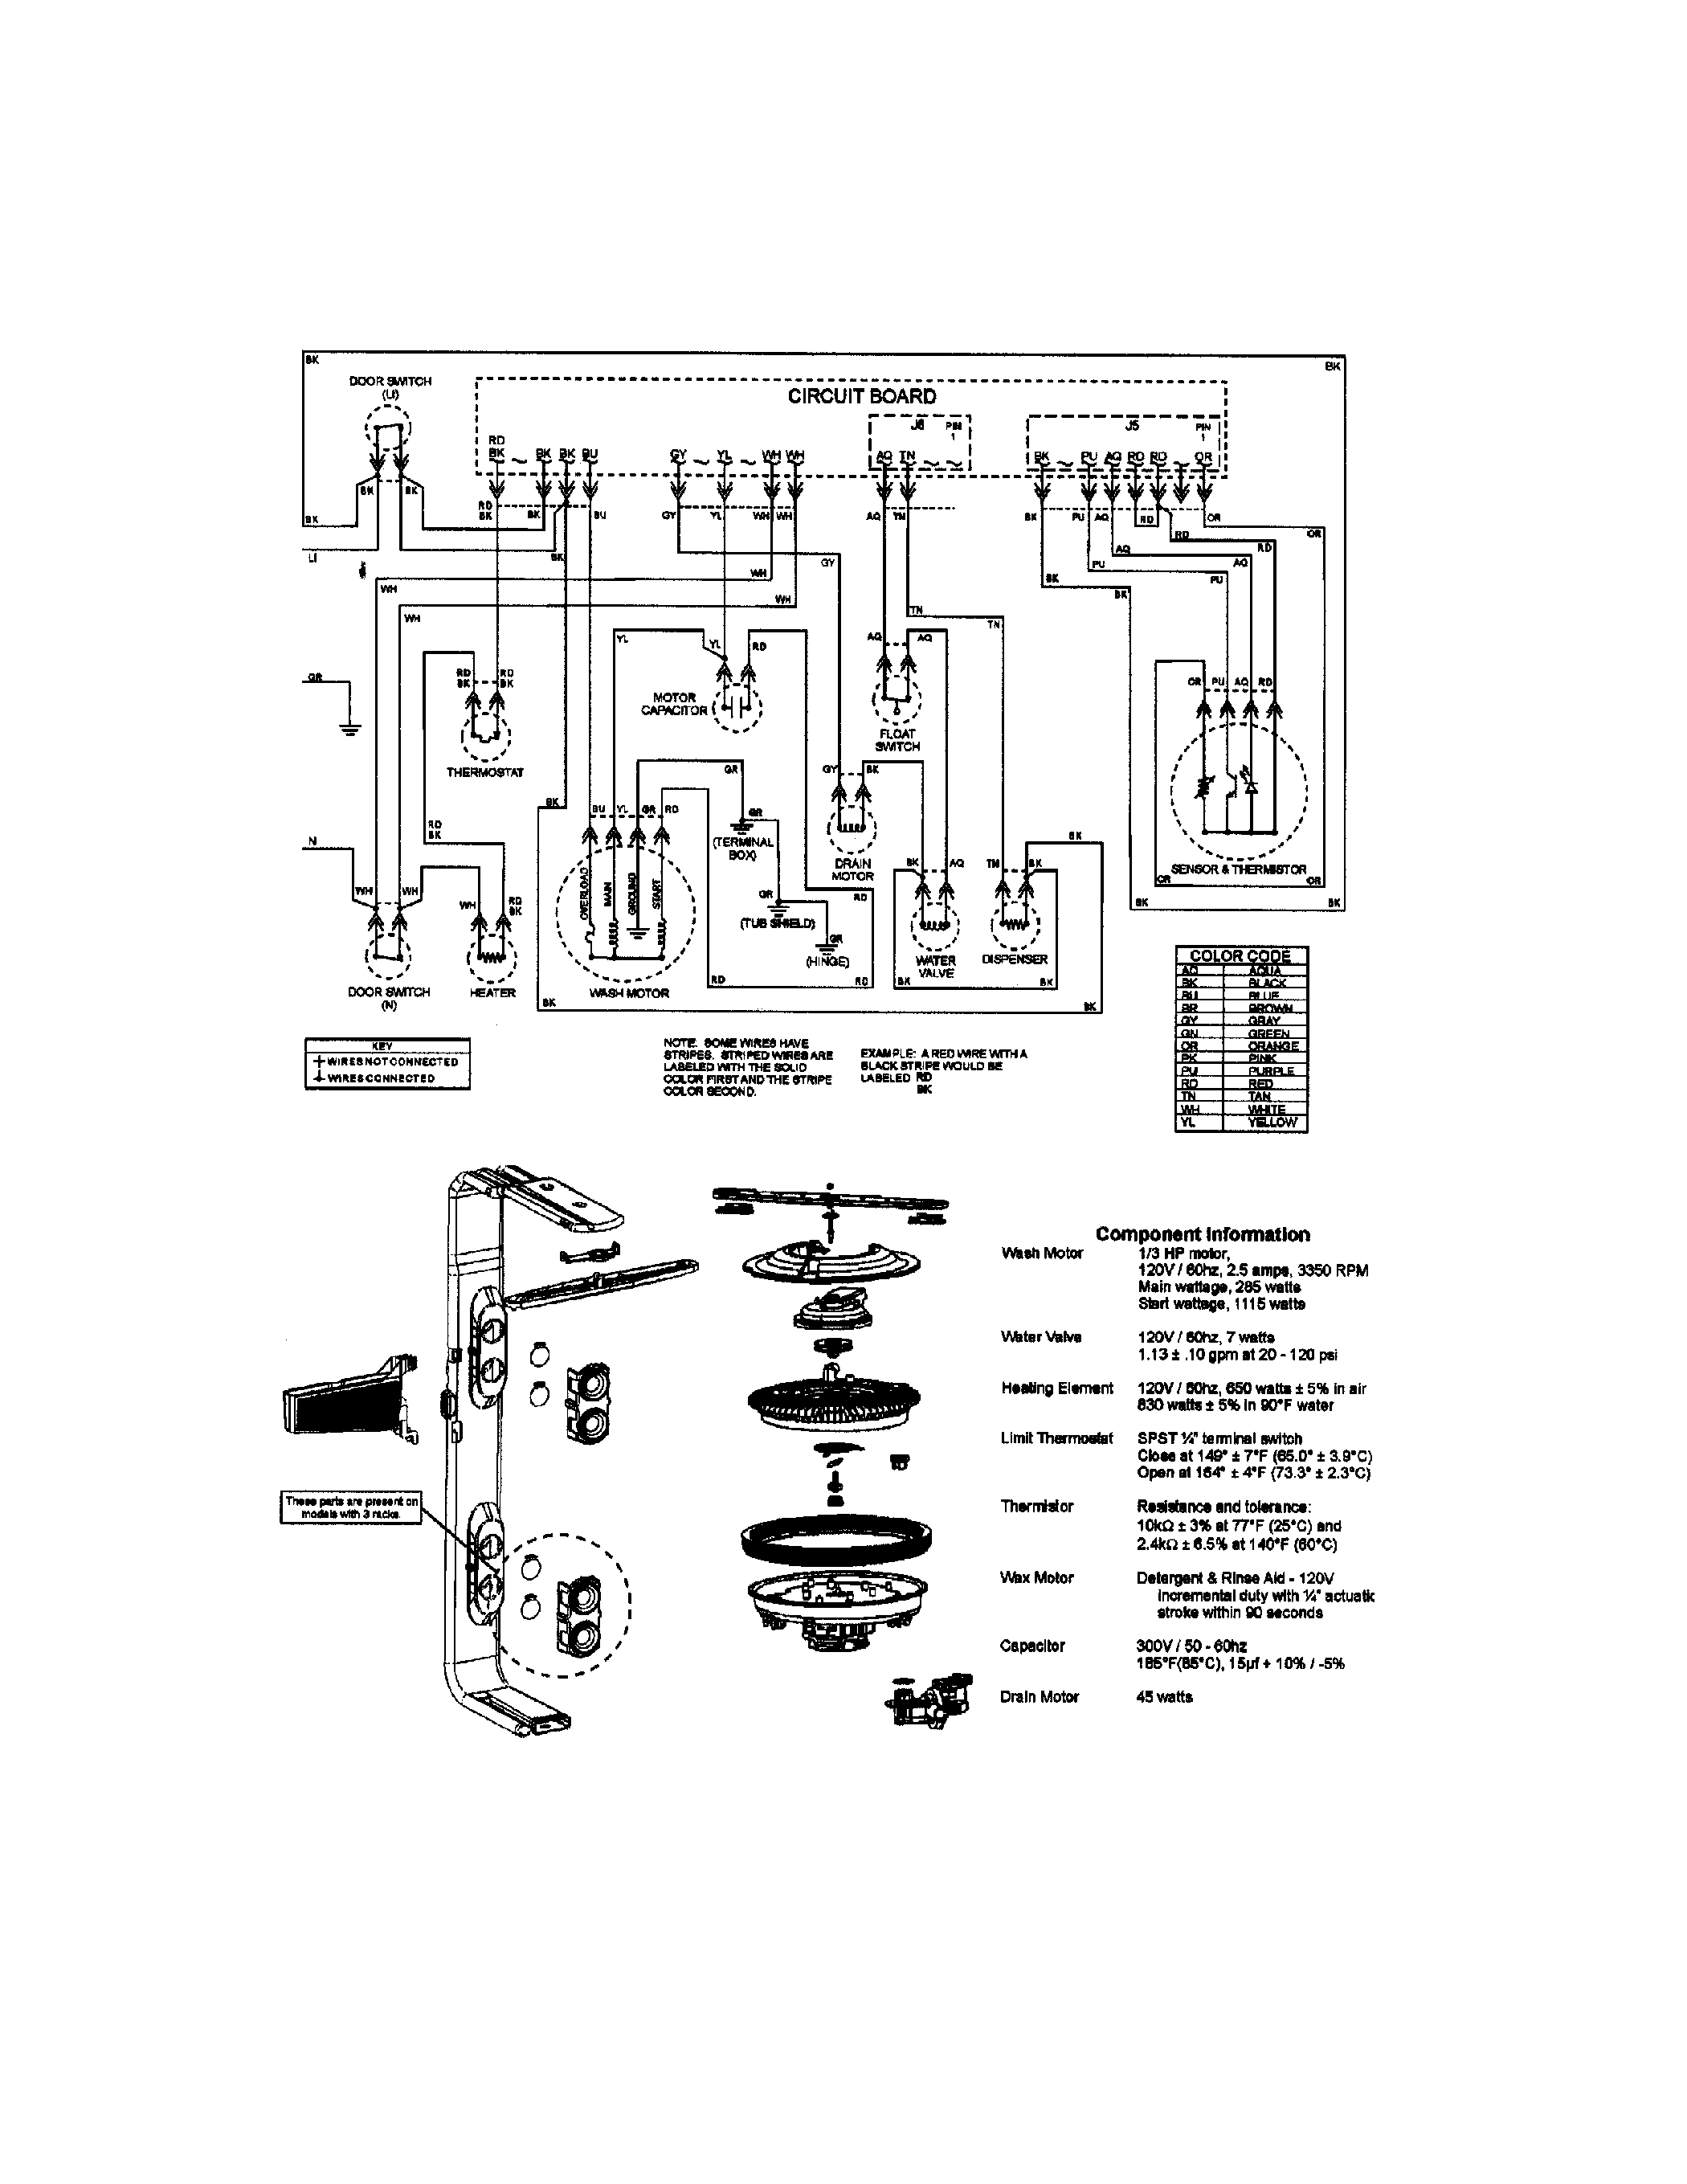 Jenn-Air model JDB1100AWS dishwasher genuine parts